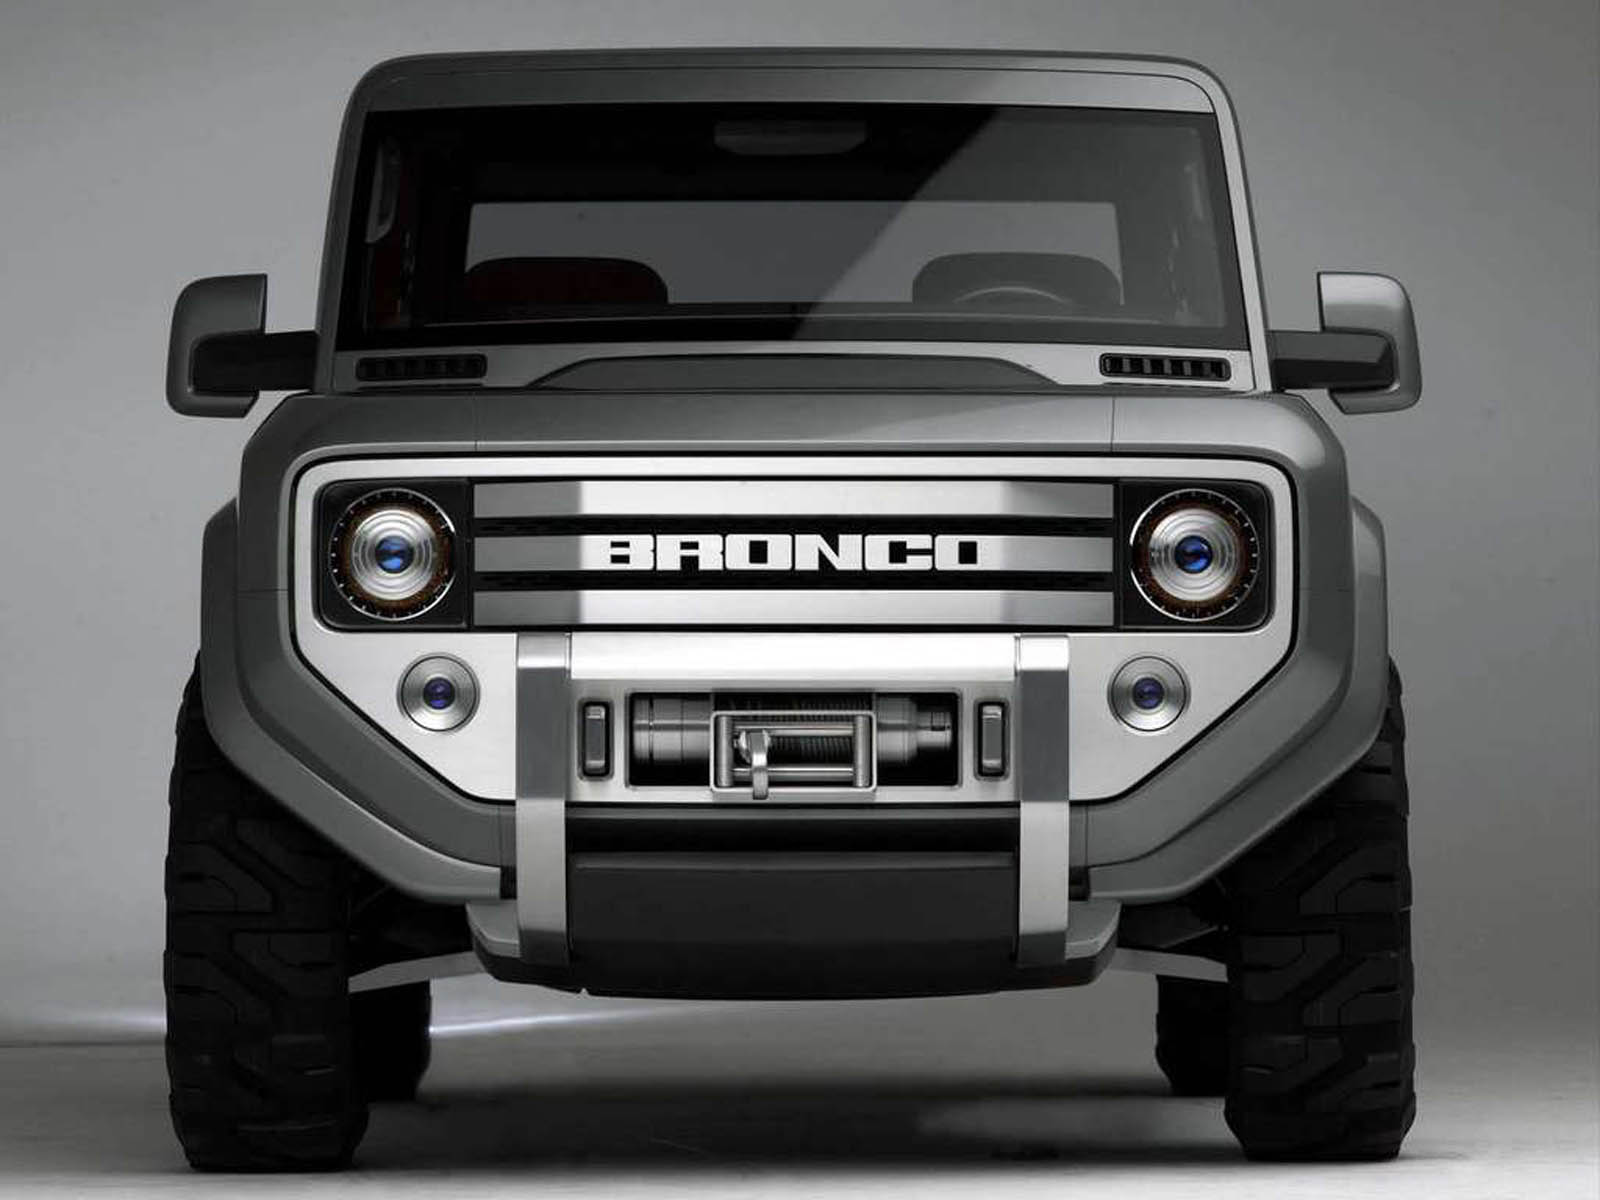 Tag: Ford Bronco Concept Car Wallpapers,Backgrounds, Photos, Images ...